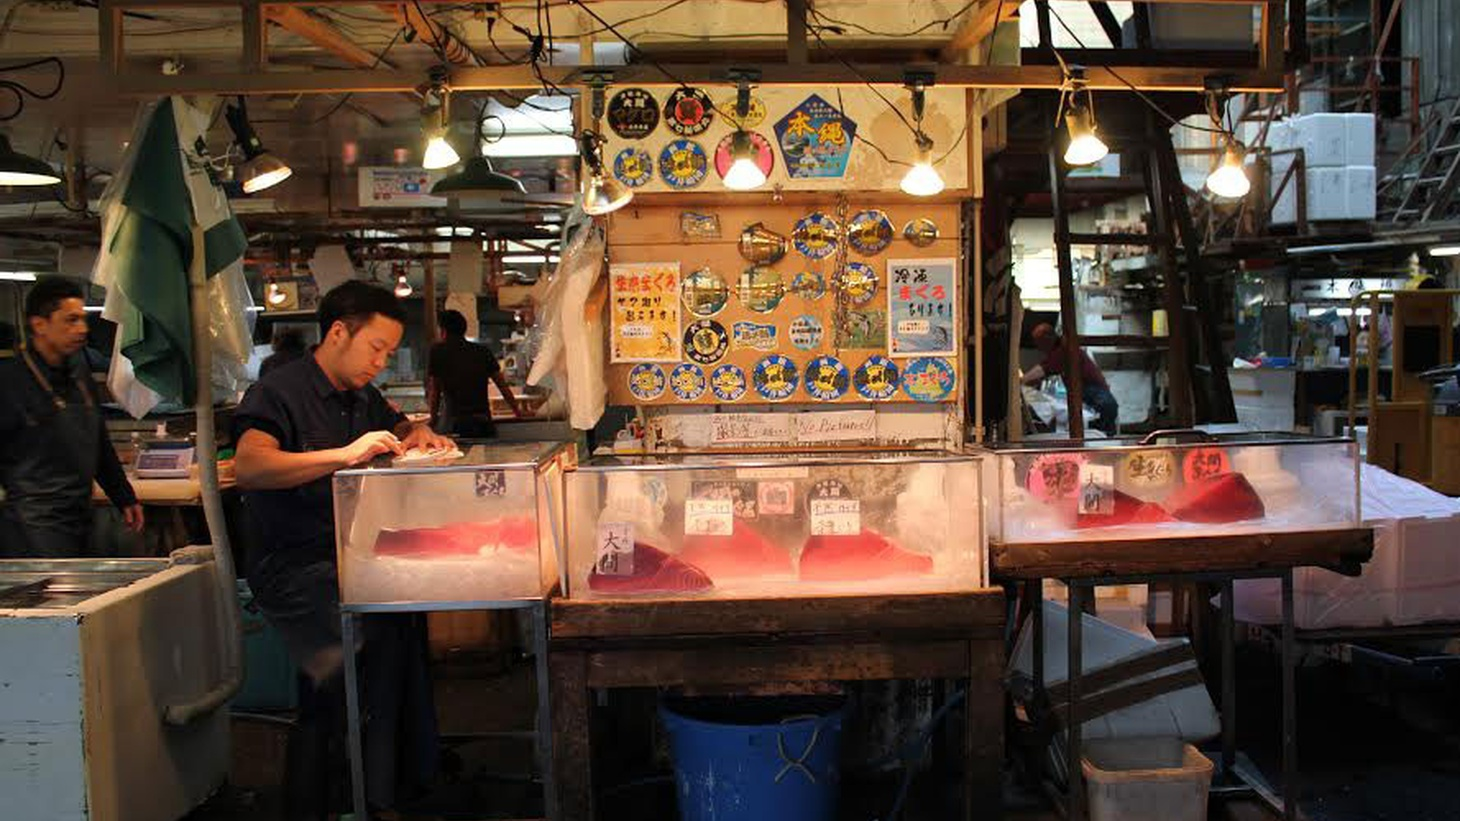 From the Tsukiji Market's tuna auction, to Japanese soul food, to dashi-- we take a look at Japanese cuisine.